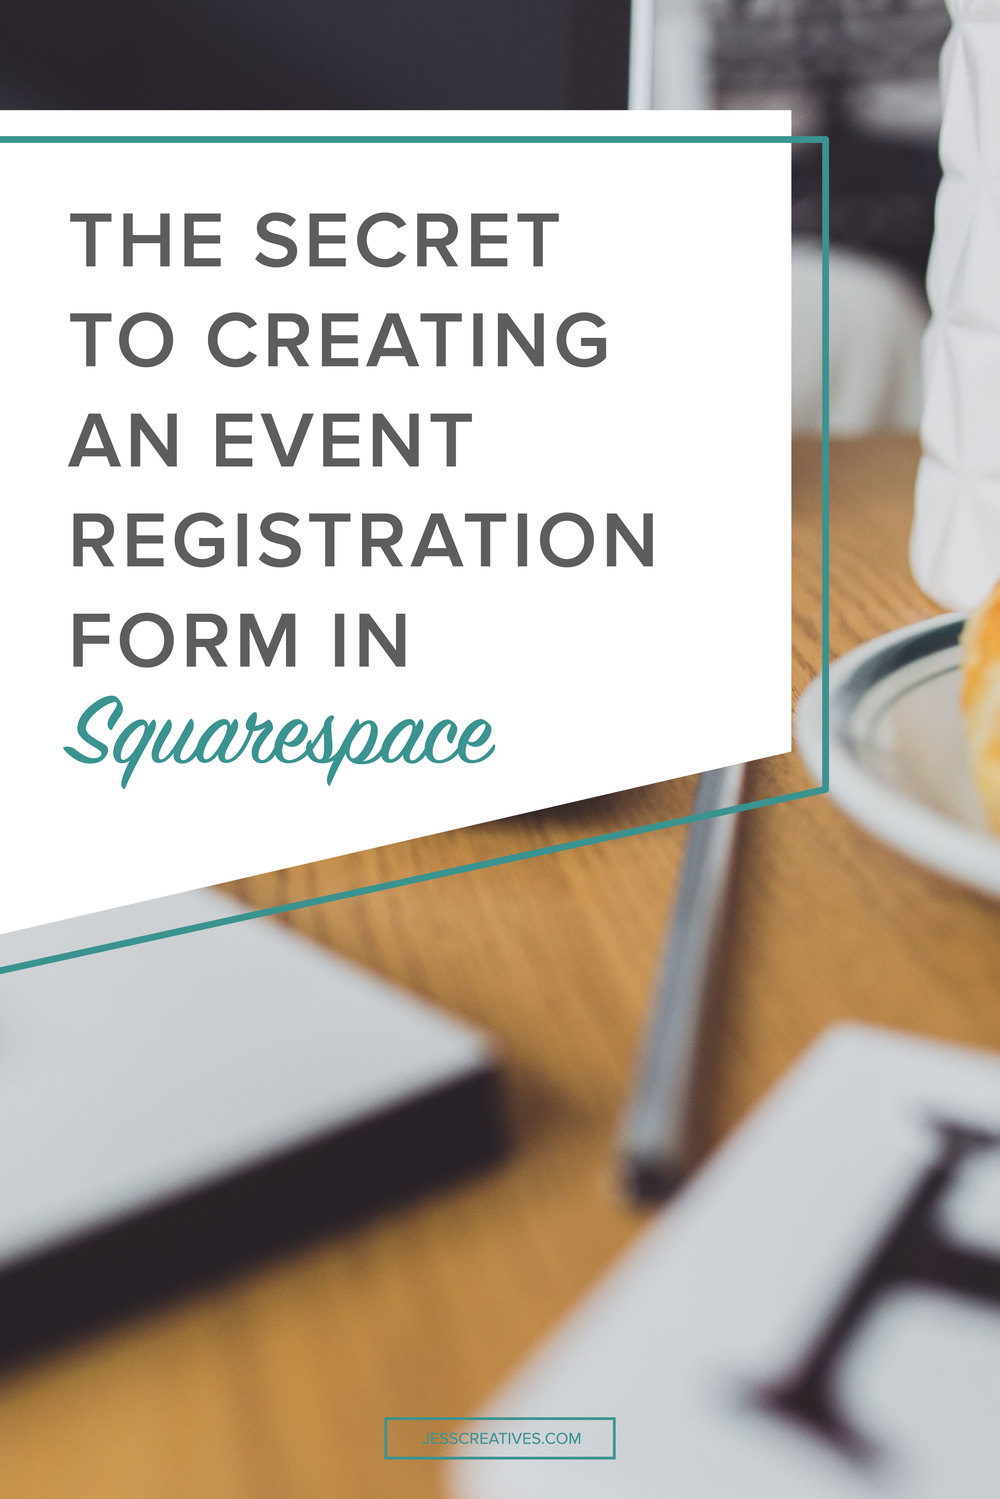 I've seen several people online (specifically photographers) asking about the best way to do event sign-ups on their Squarespace website. Squarespace does have an Event Block, but it doesn't currently have an option for sign-ups. Lucky for you, I know an easy workaround for that.